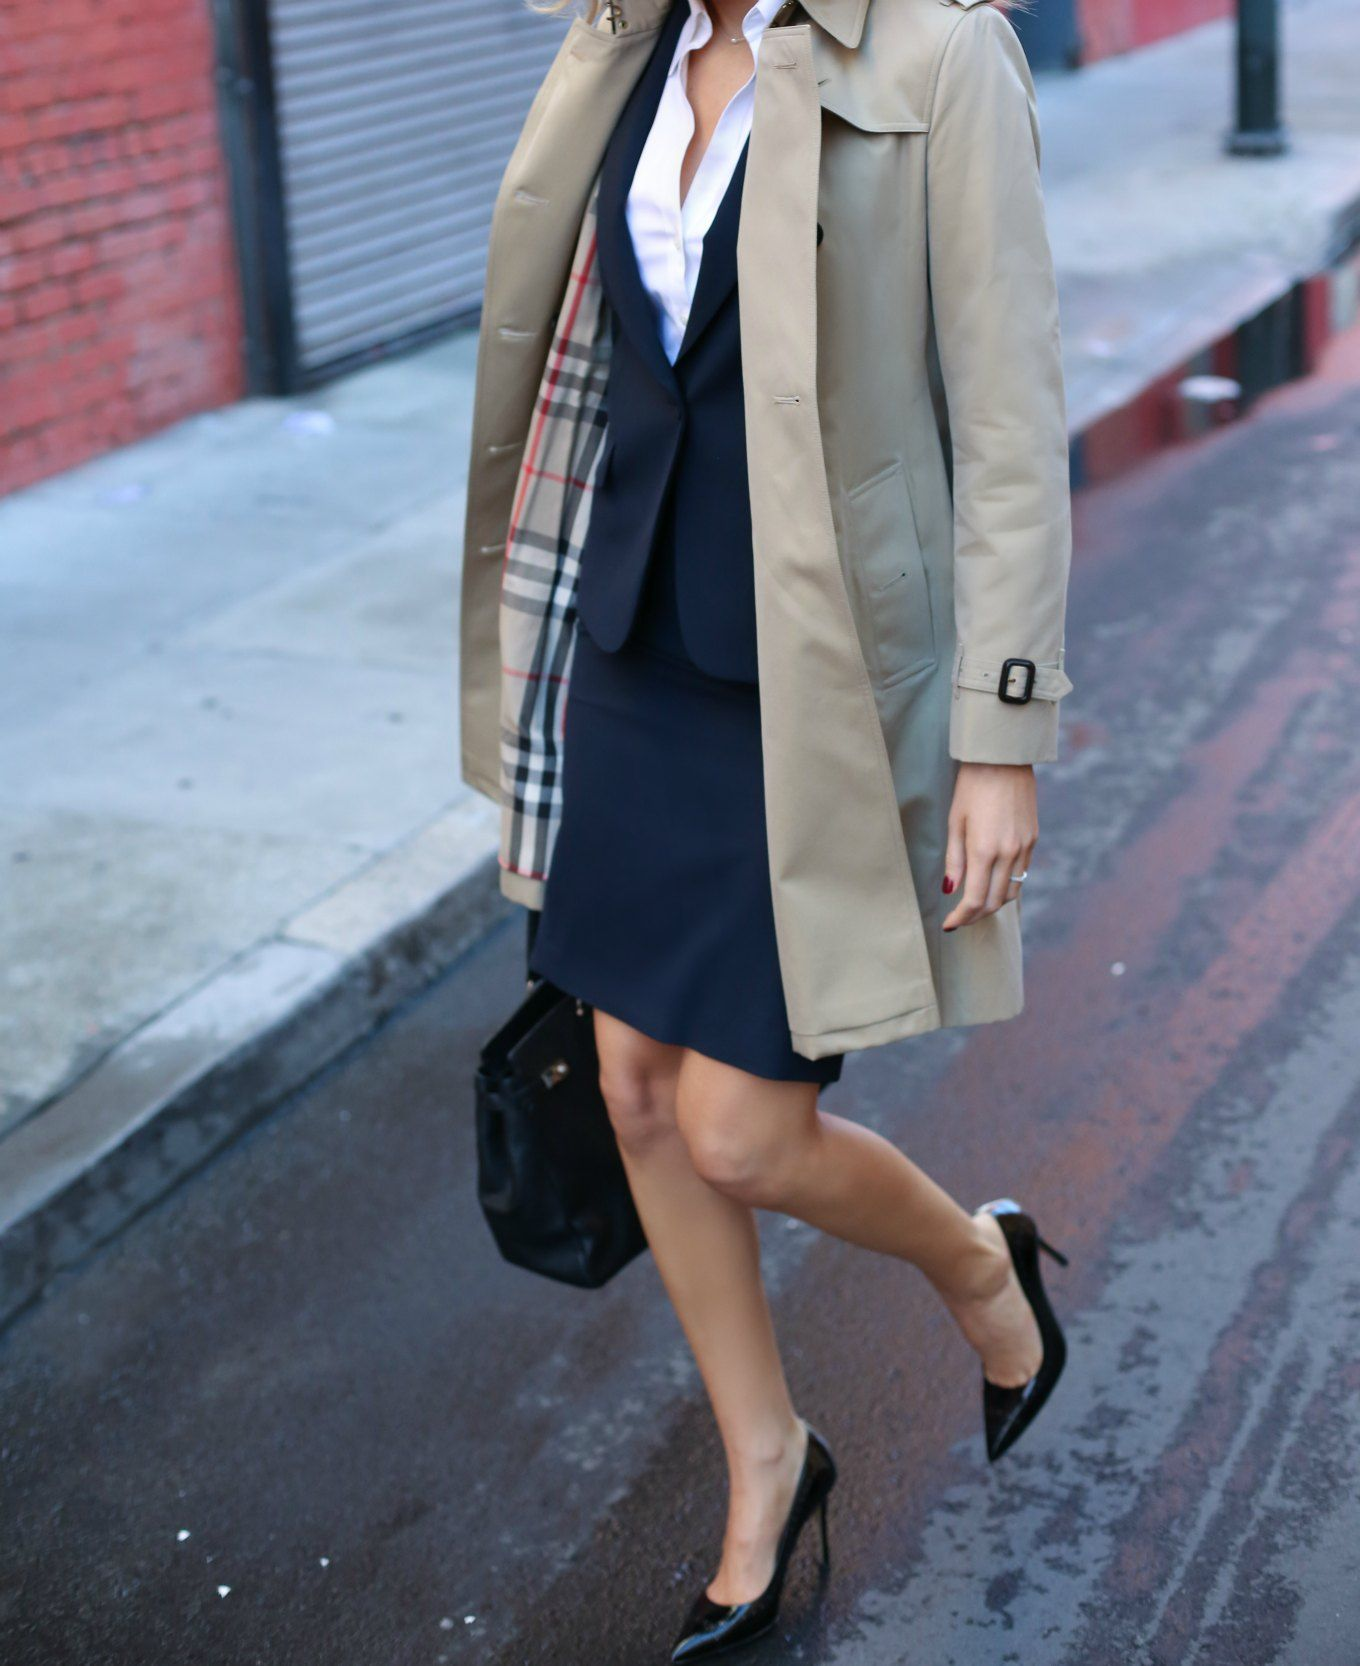 3fdbe6b73f burberry-kensington-trench-coat-henri-bendel-black-carlyle-tote-work-wear  interview-attire-professional-women-staples-fashion-style-blog-5